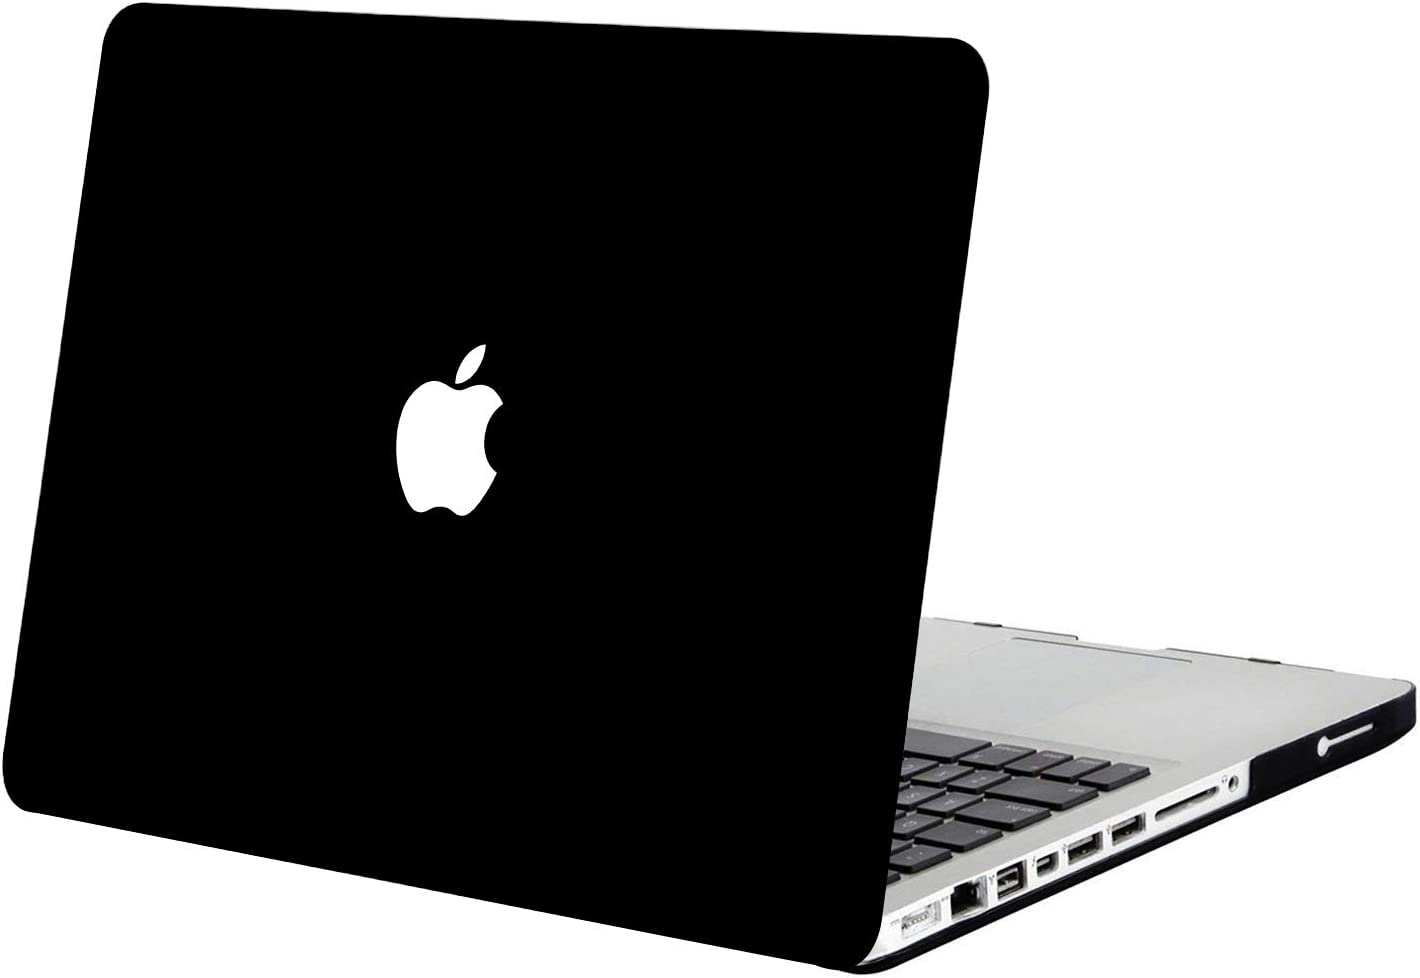 MOSISO Plastic Hard Shell Case Cover Only Compatible with Old Version MacBook Pro 13 Inch (Model: A1278, with CD-ROM), Release Early 2012/2011/2010/2009/2008, Black